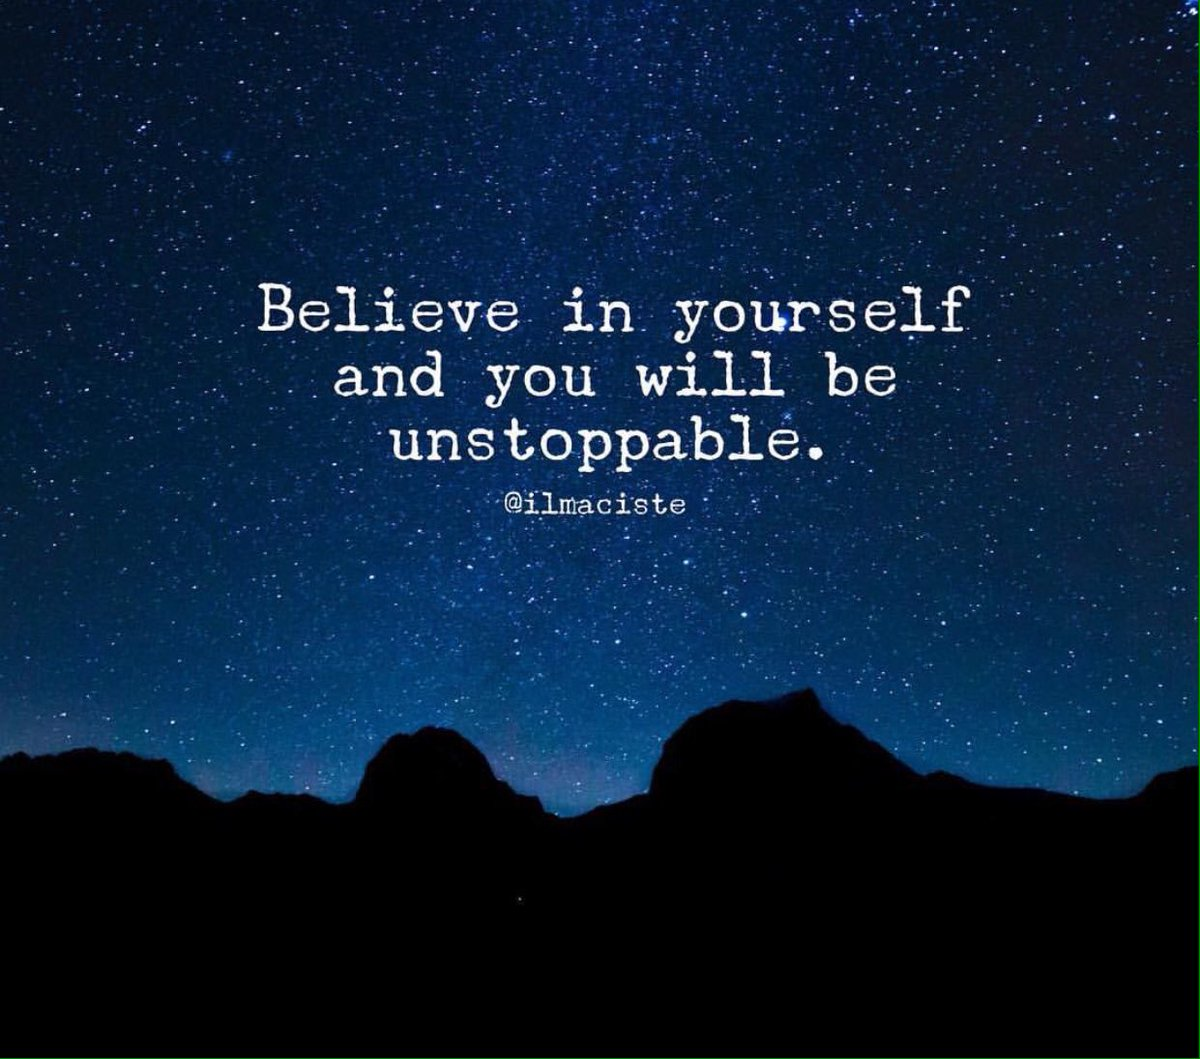 Believe in yourself &amp; YOU will be unstoppable. #motivation #spdc #SuccessTRAIN #business #startup #success #SmallBiz<br>http://pic.twitter.com/DzAGaLRnsf